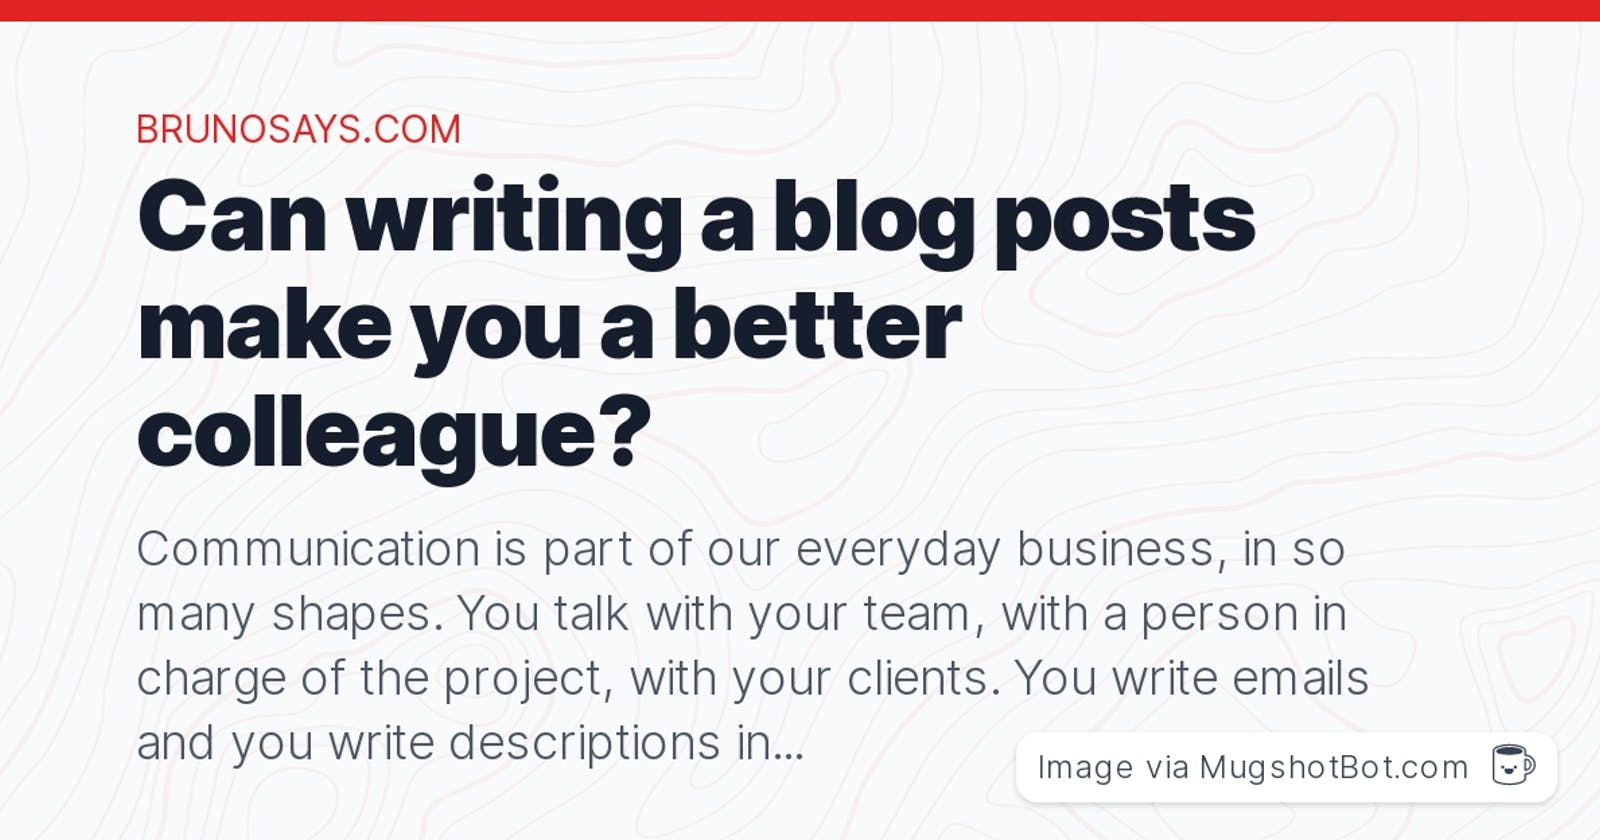 Can writing a blog posts make you a better colleague?